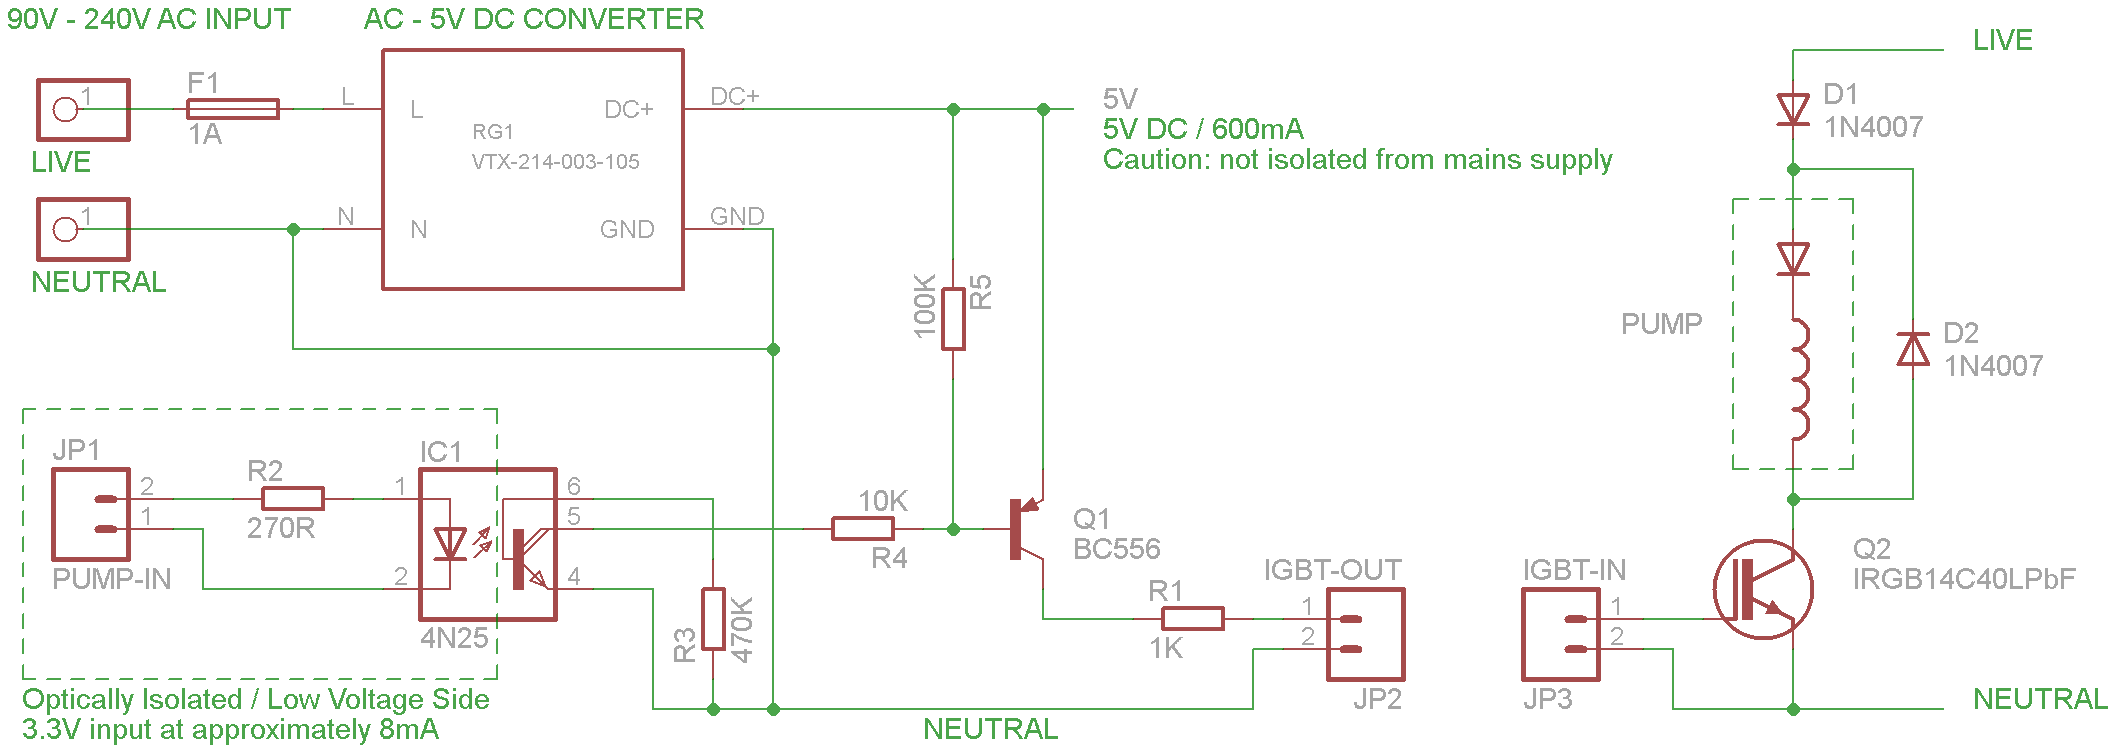 EP5 Pump PWM with IGBT